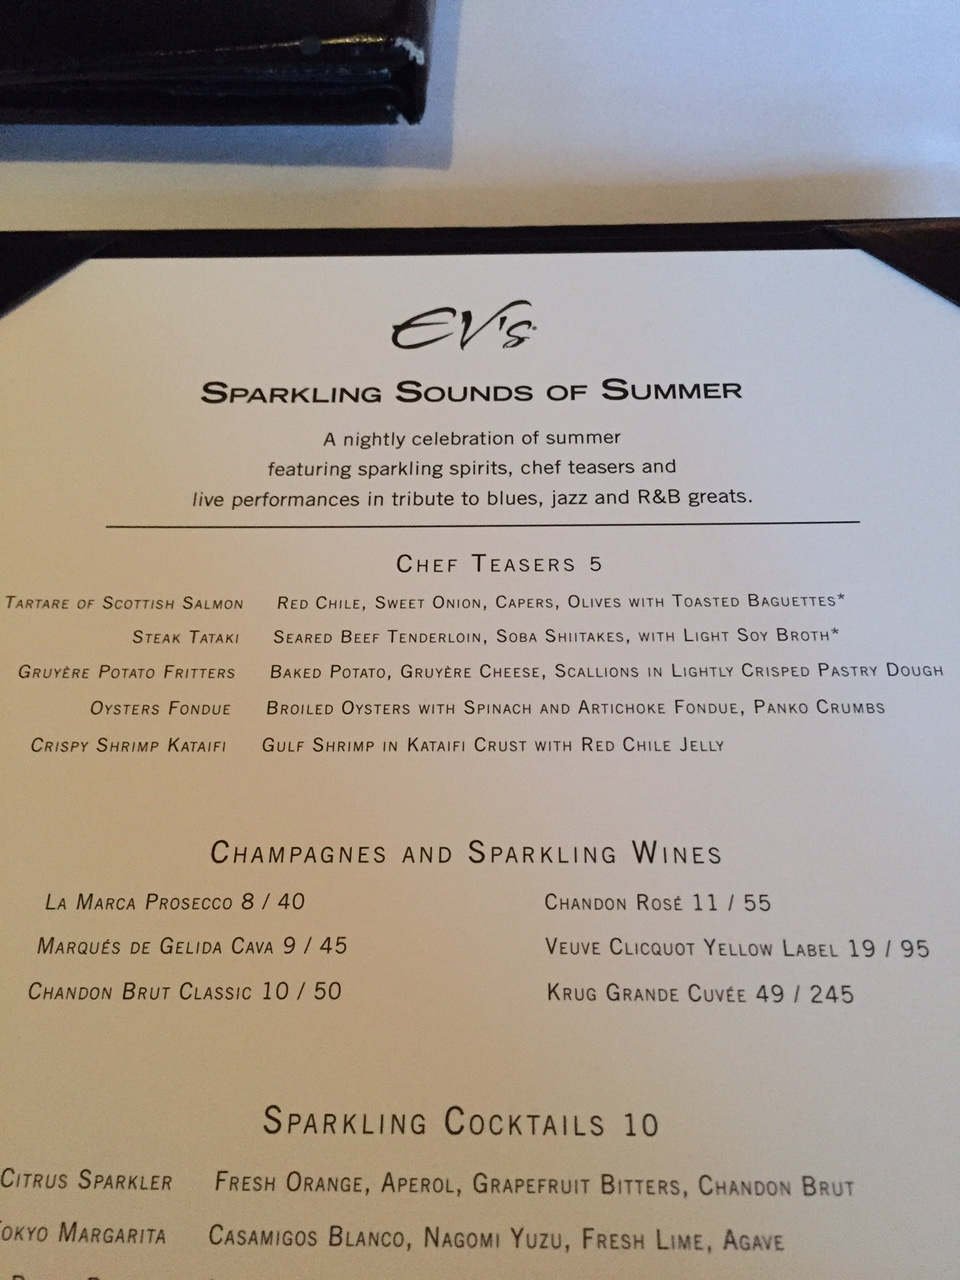 Eddie V's Sparkling Sounds of Summer Menu 1